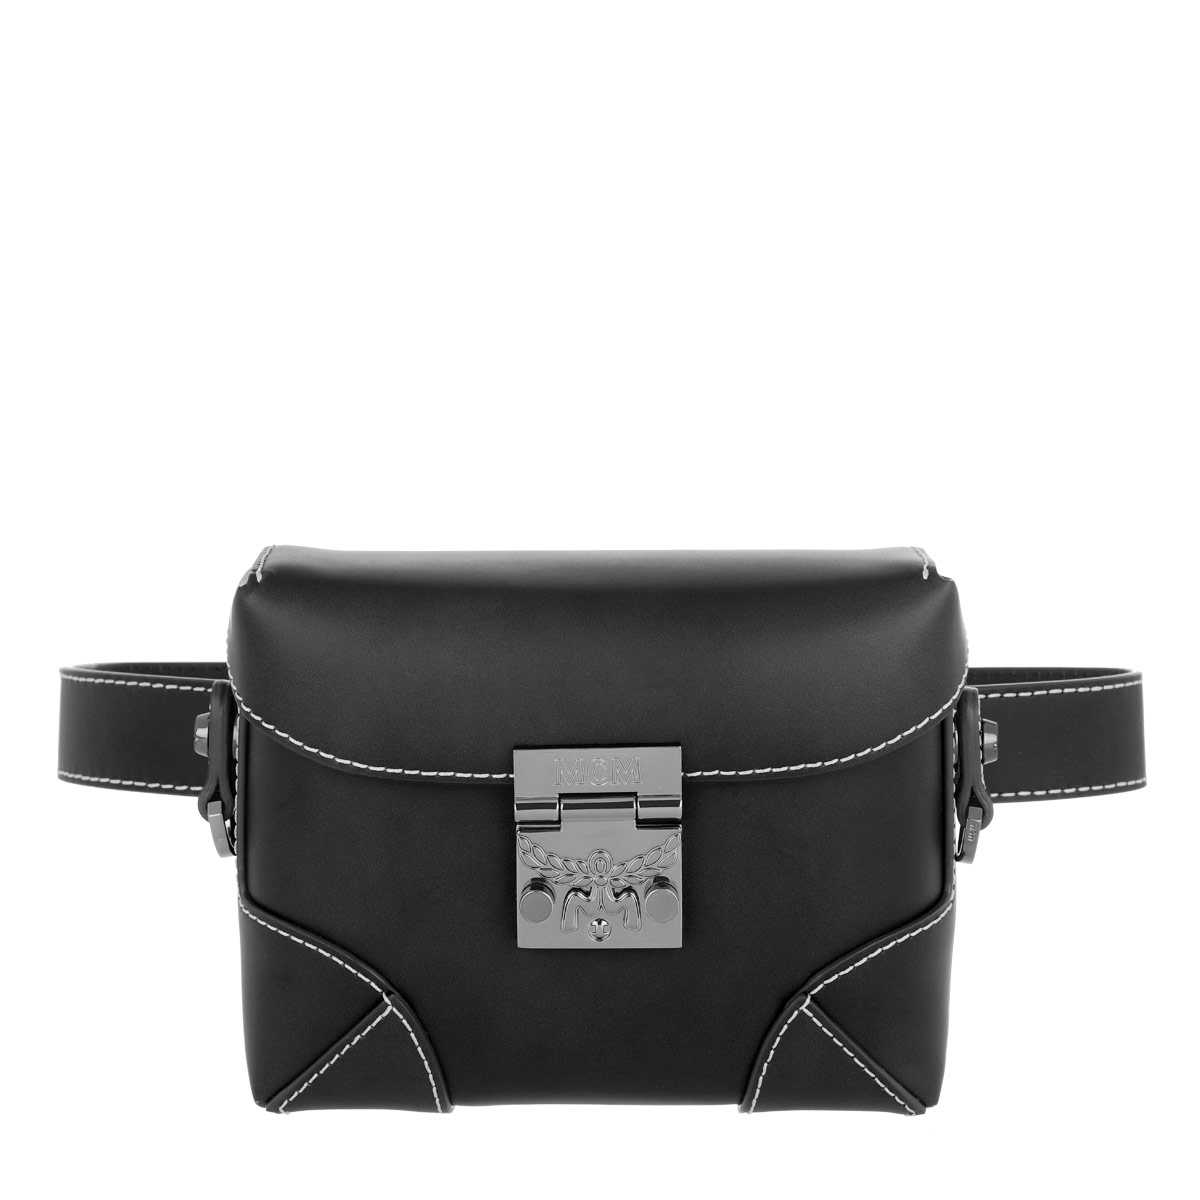 MCM Gürteltasche - Soft Berlin Vachetta Belt Bag Small Black - in schwarz - für Damen